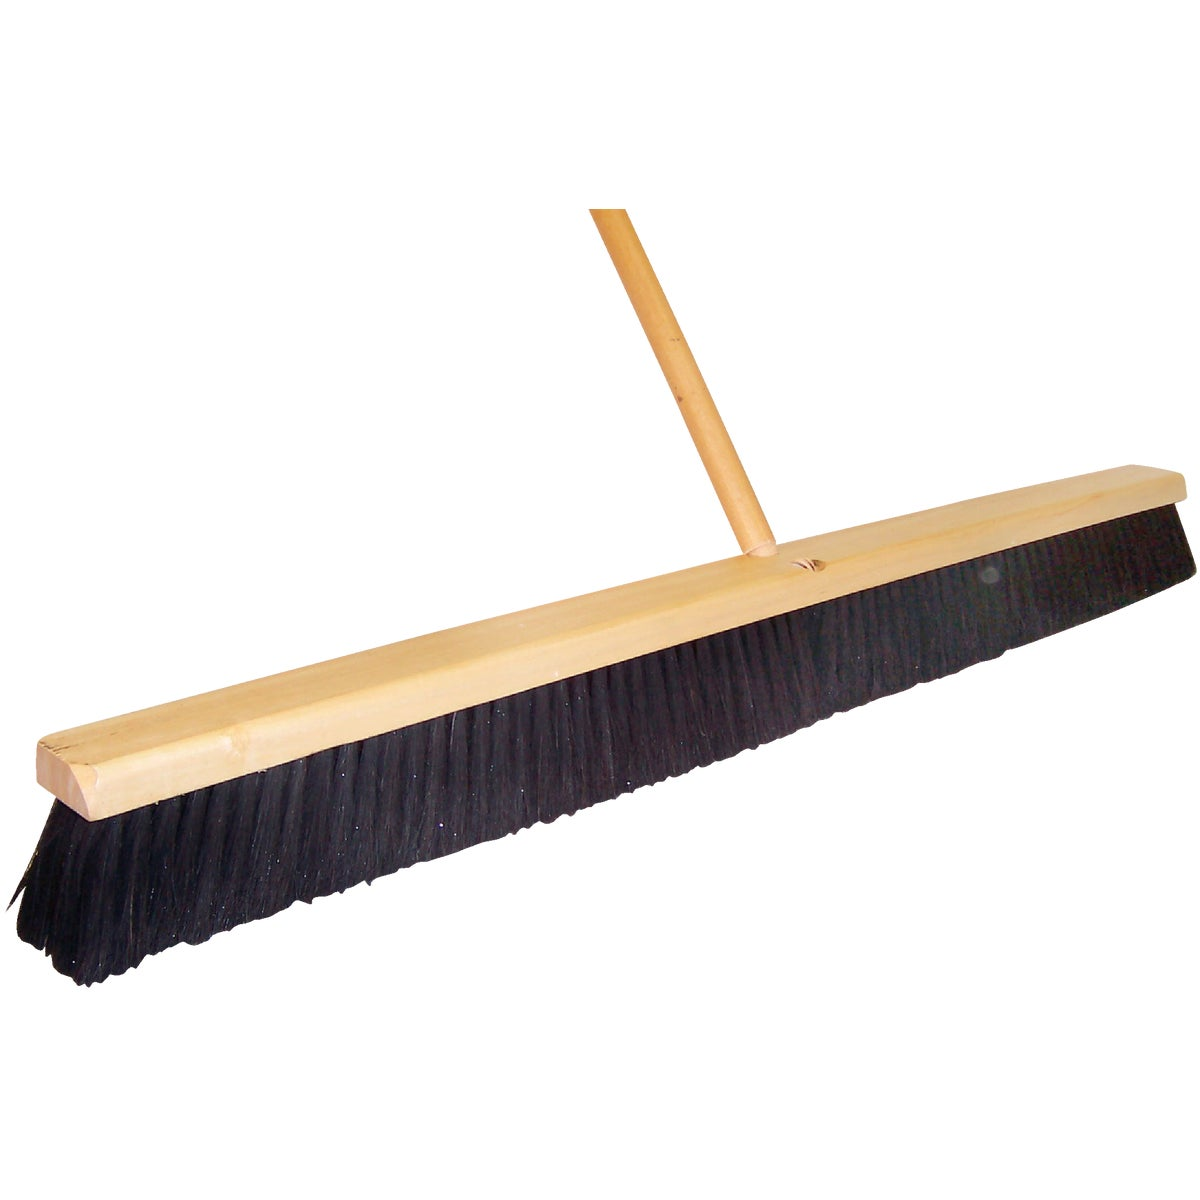 "36"" PUSH BROOM HEAD - 10605 by D Q B Ind"